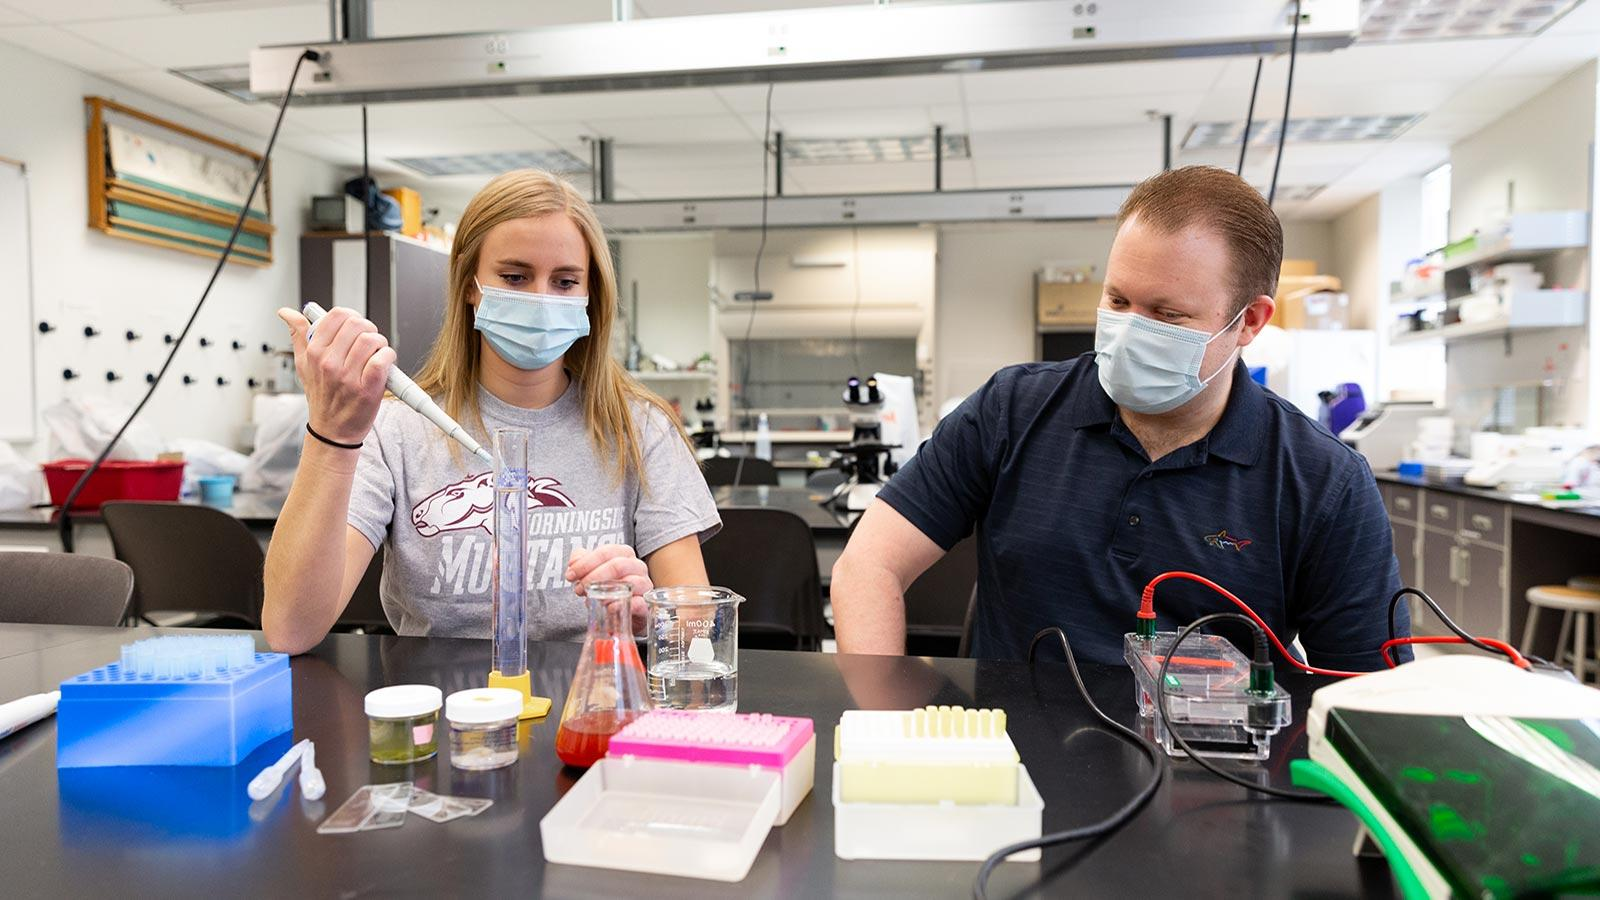 Tenly Hansen and Dr. Chad Leugers working in a lab at Morningside.